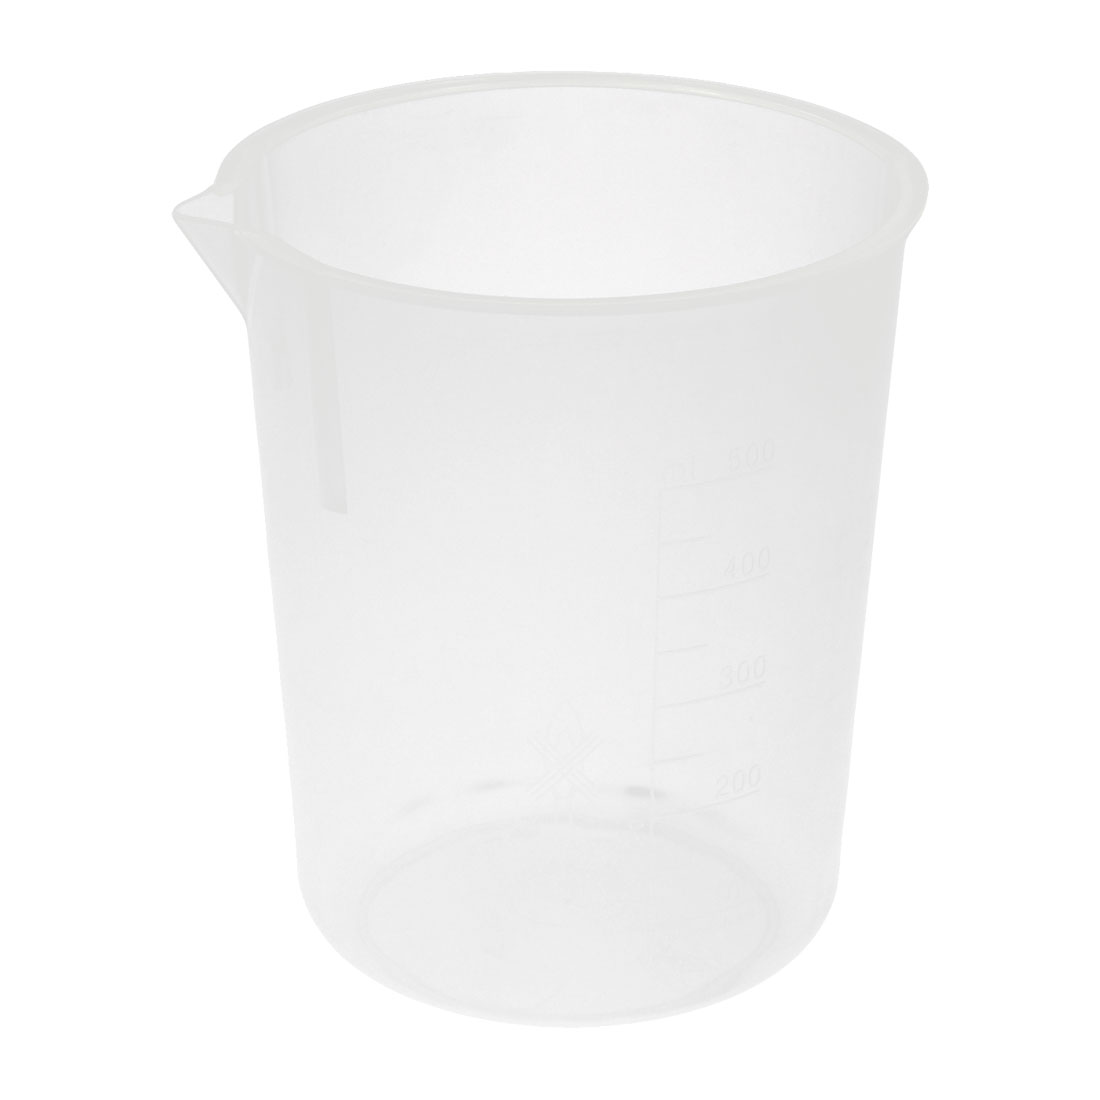 11cm x 12cm 500mL Capacity Clear White Graduated Scale Plastic Beaker Measuring Cup Liquid Measurer Holder for Lab Laboratory